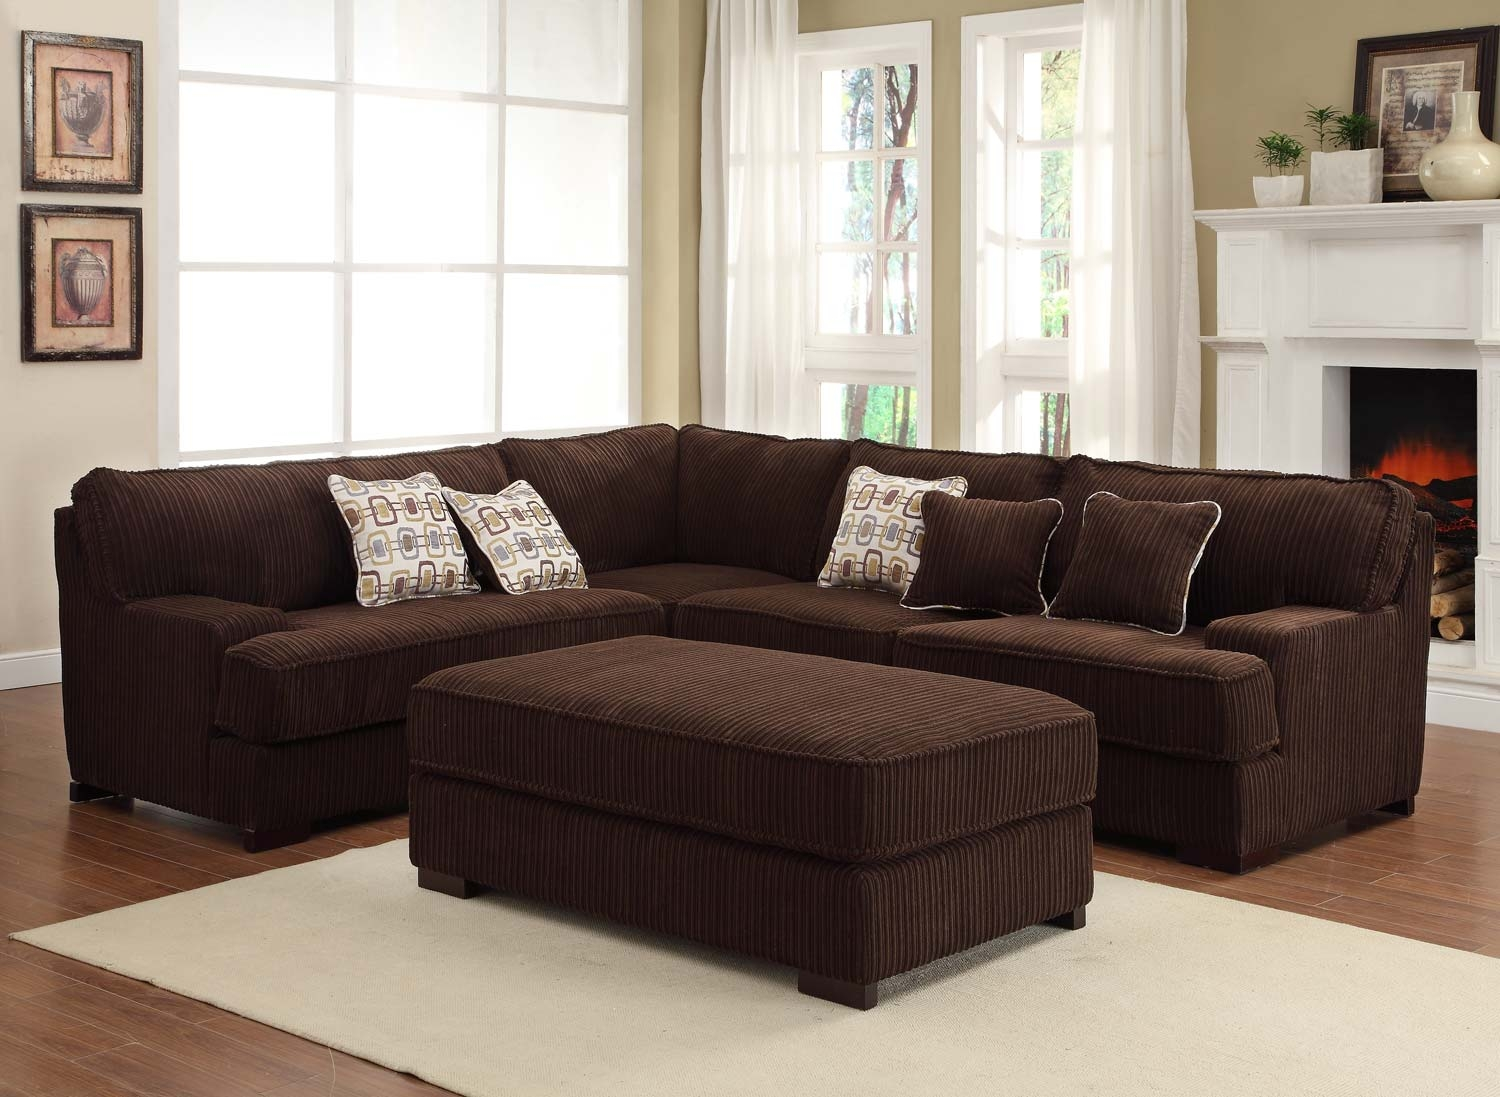 chocolate brown sectional sofas 12 photo of chocolate. Black Bedroom Furniture Sets. Home Design Ideas